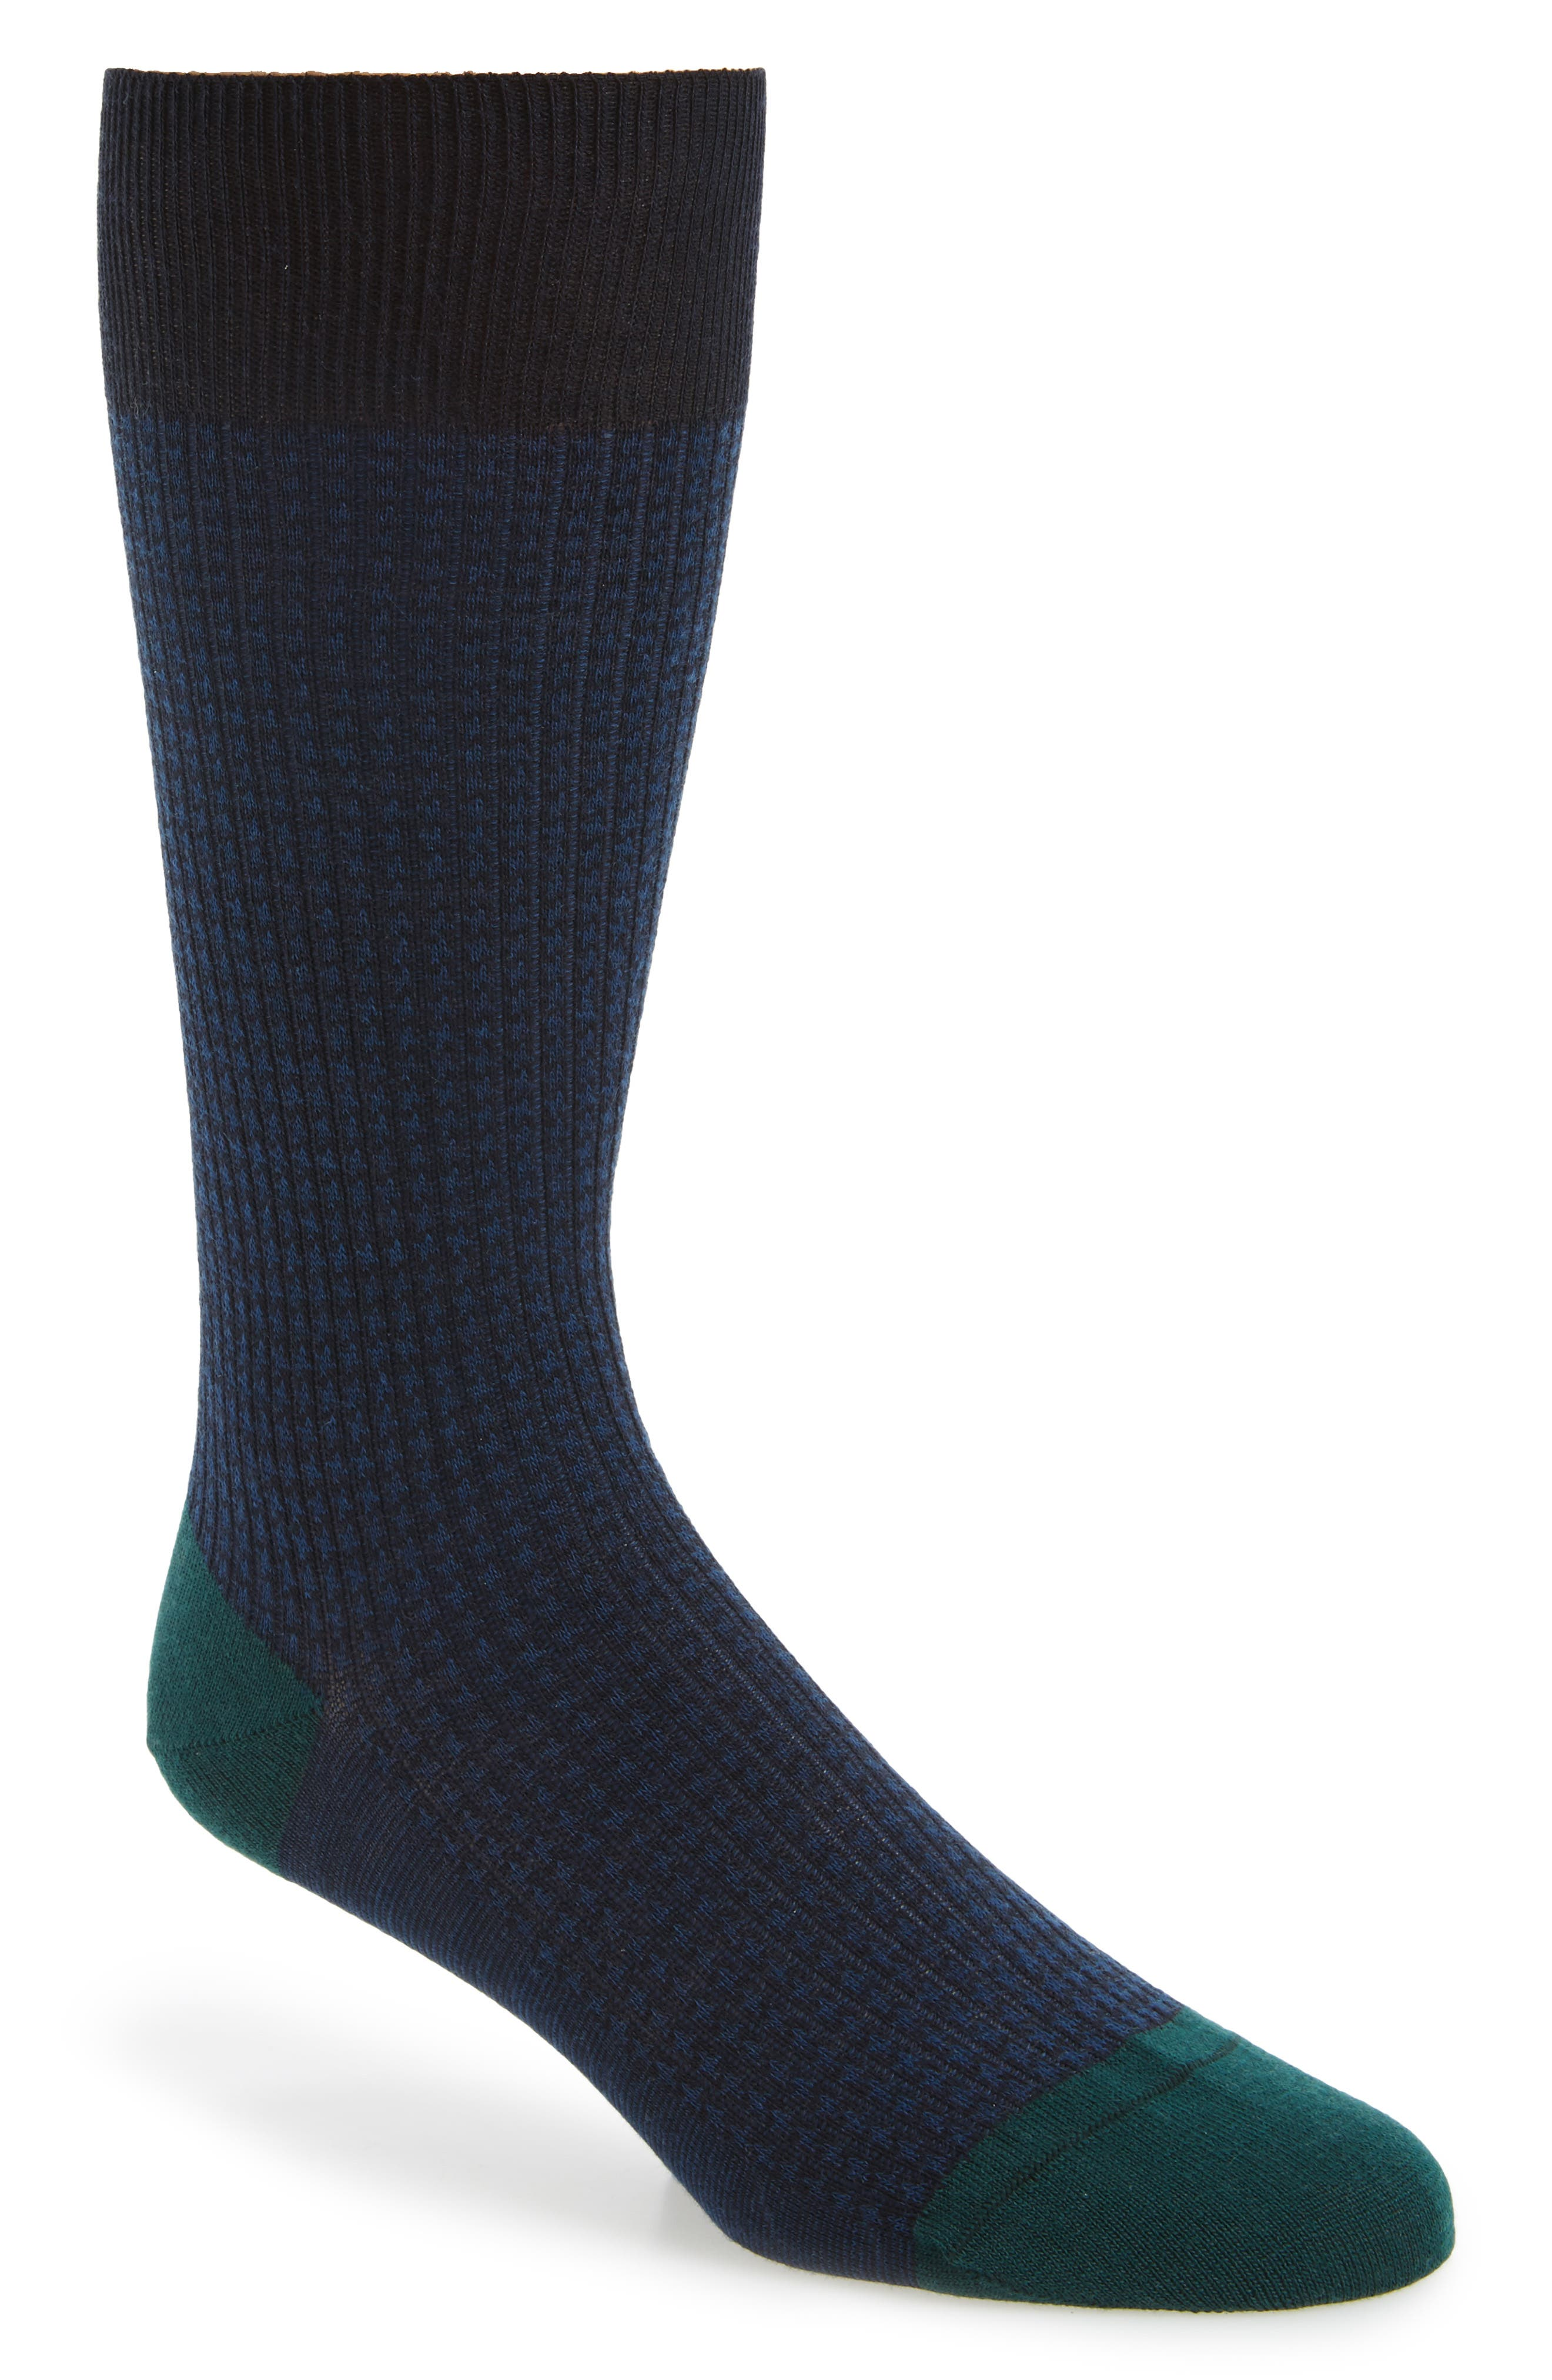 Houndstooth Wool Blend Socks,                         Main,                         color, Navy